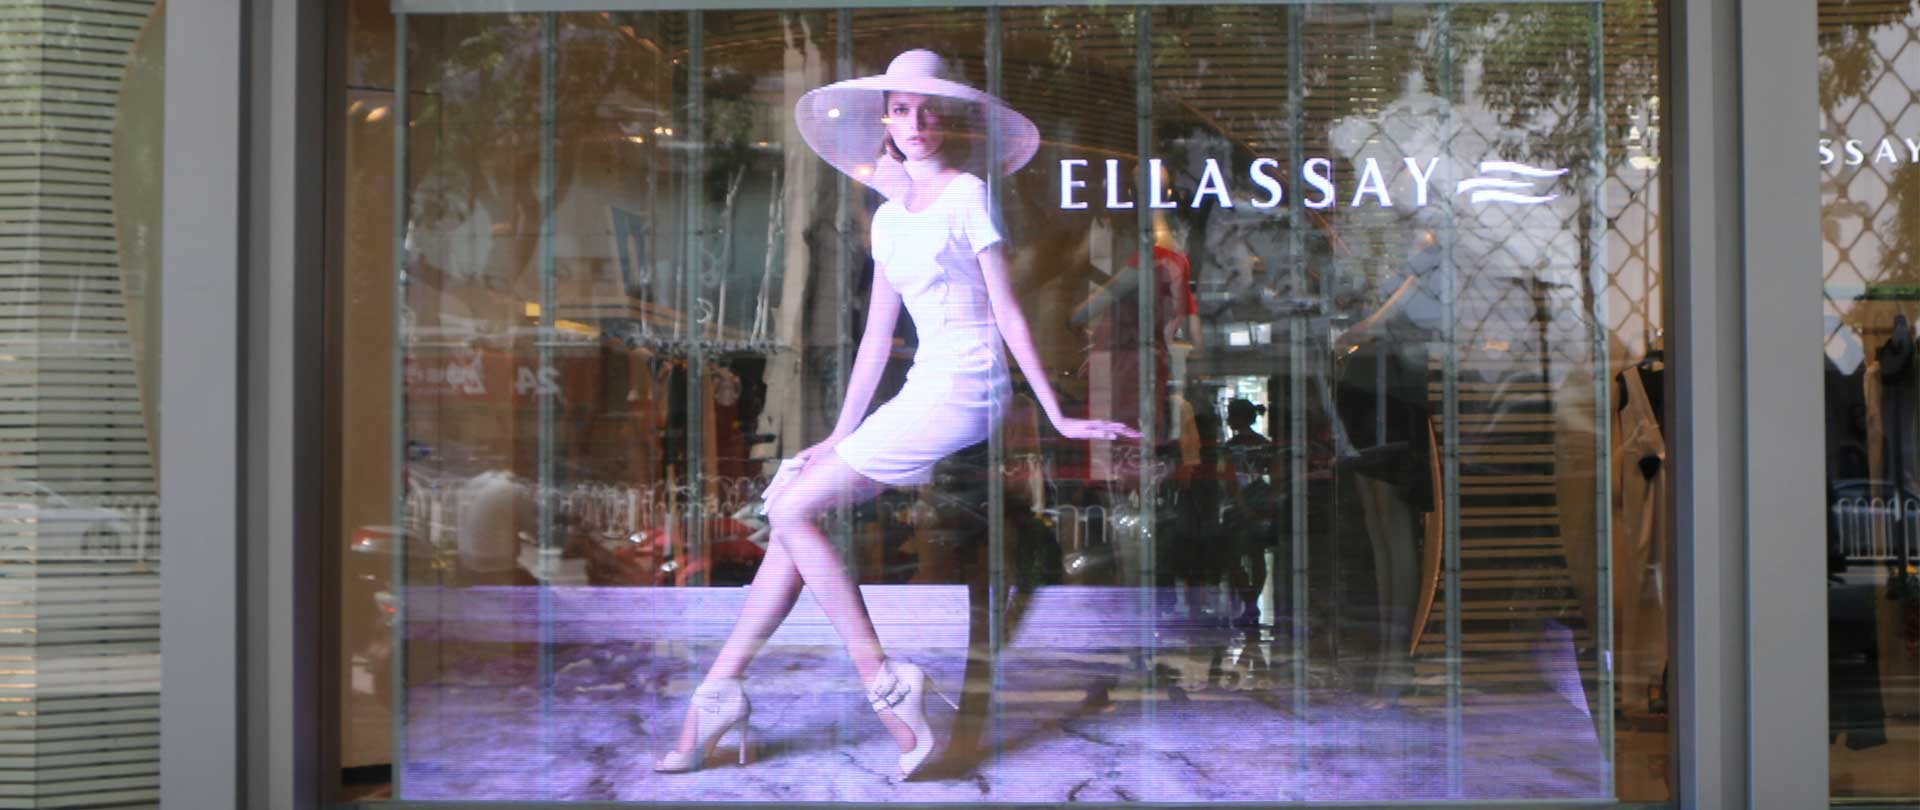 Ellassay digital advertising window